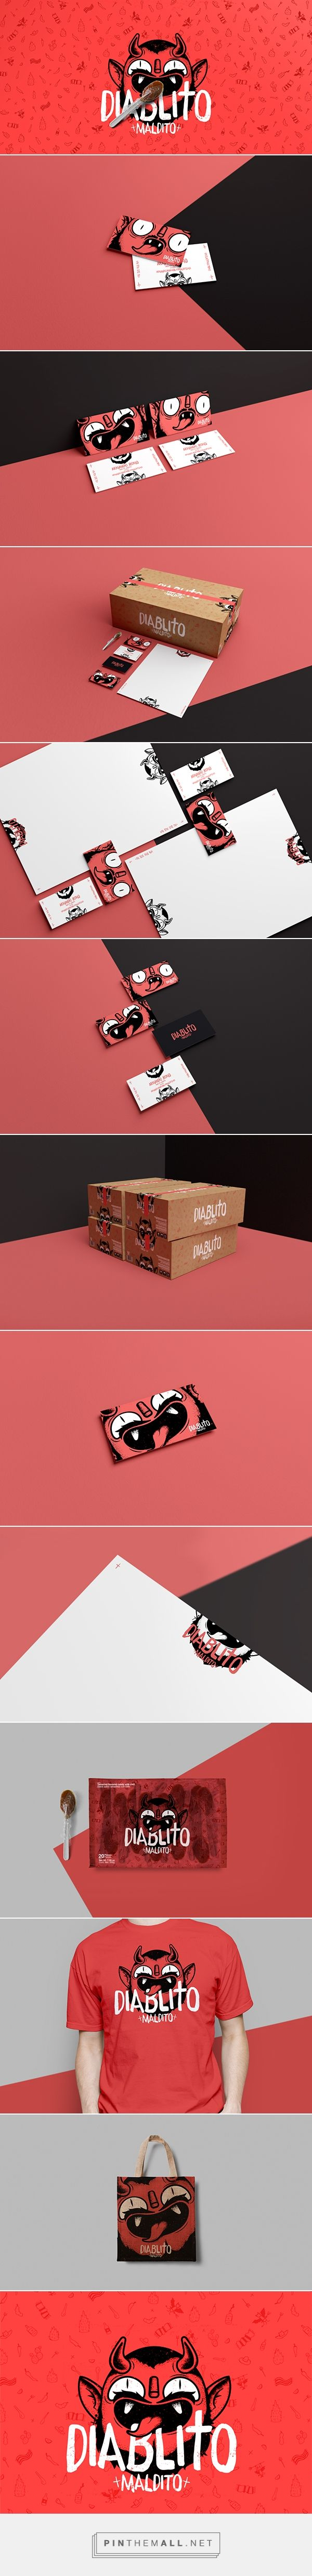 Diablito Maldito on Behance - - - - - - - - - - - -... - a grouped images picture - Pin Them All